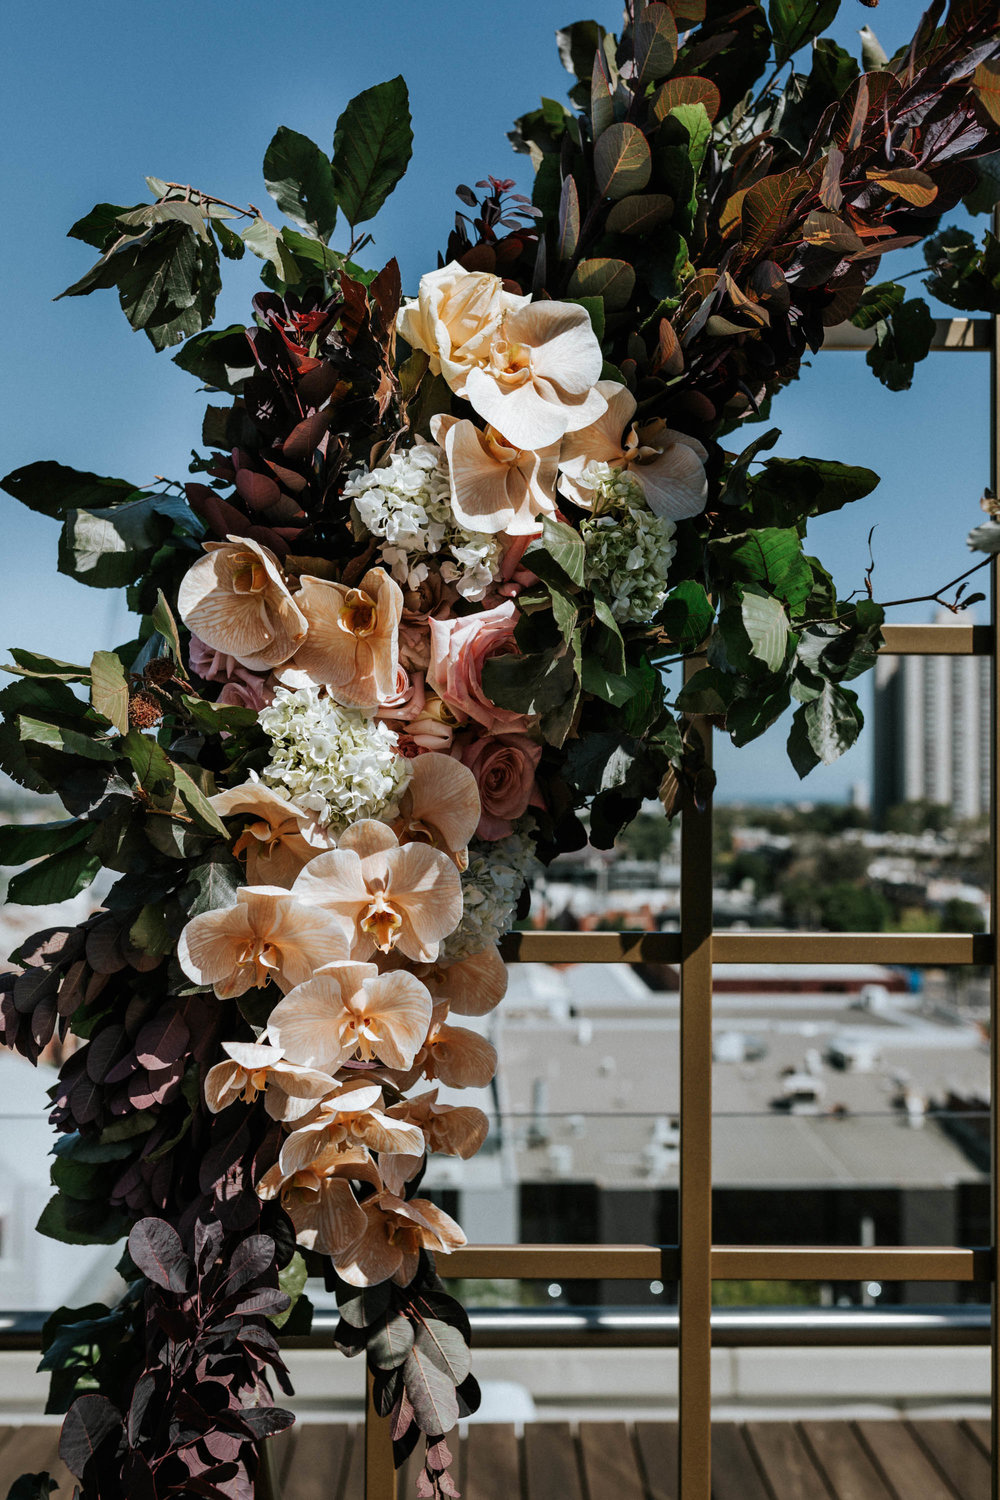 wedding styling melbourne event planning melbourne event styling melboutne event planner visual merchandising wedding stylist